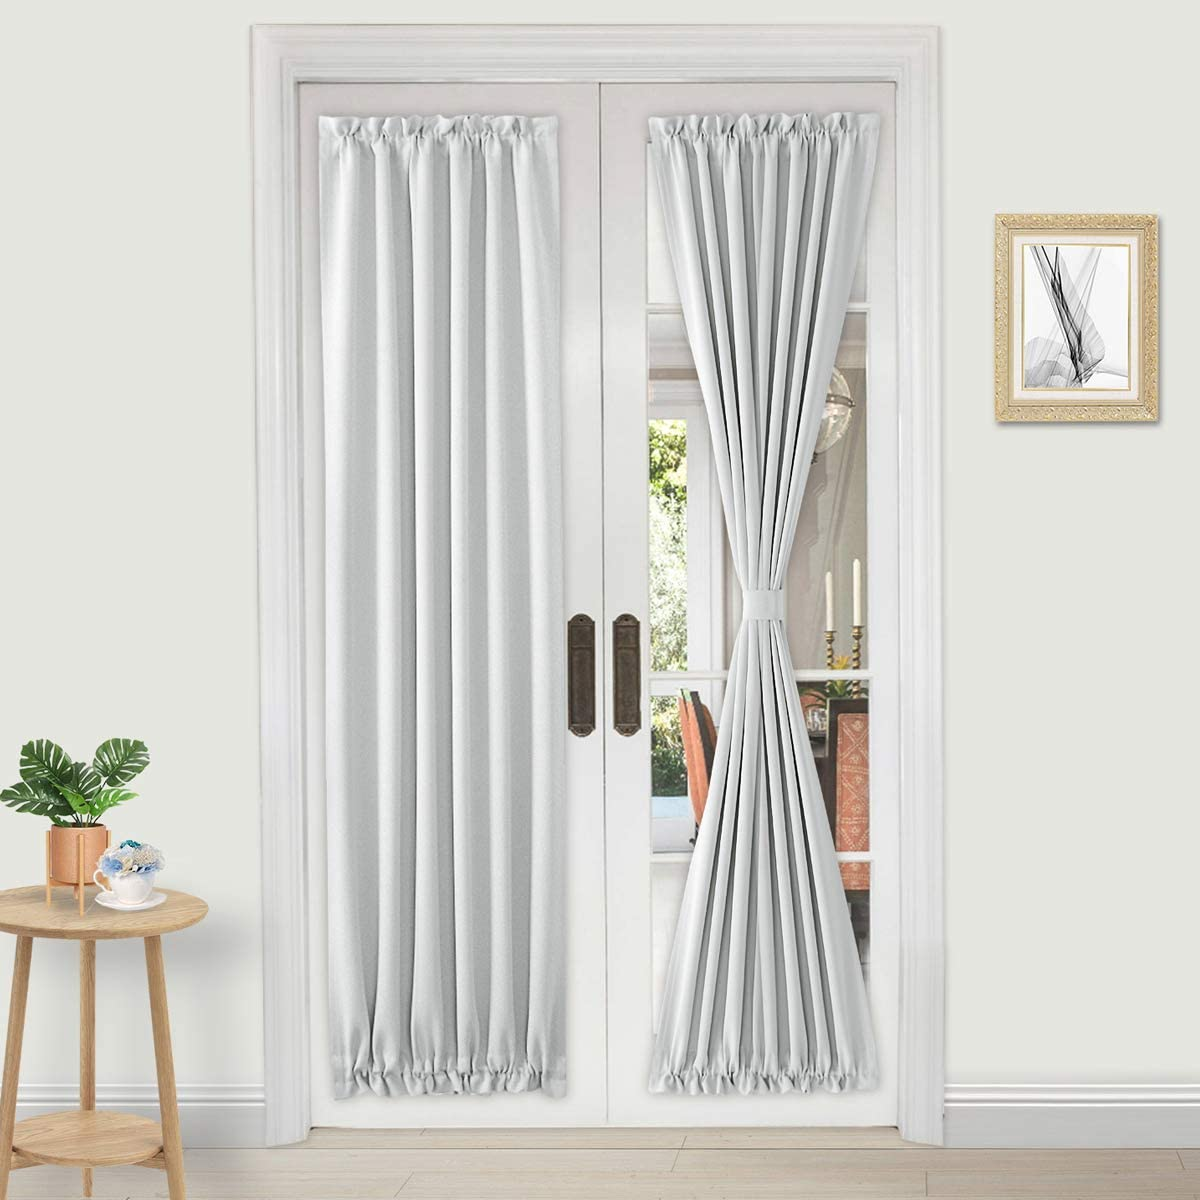 dwcn french door curtains rod pocket thermal blackout curtain for doors with glass window kitchen and patio doors for privacy 25 x 72 inches long